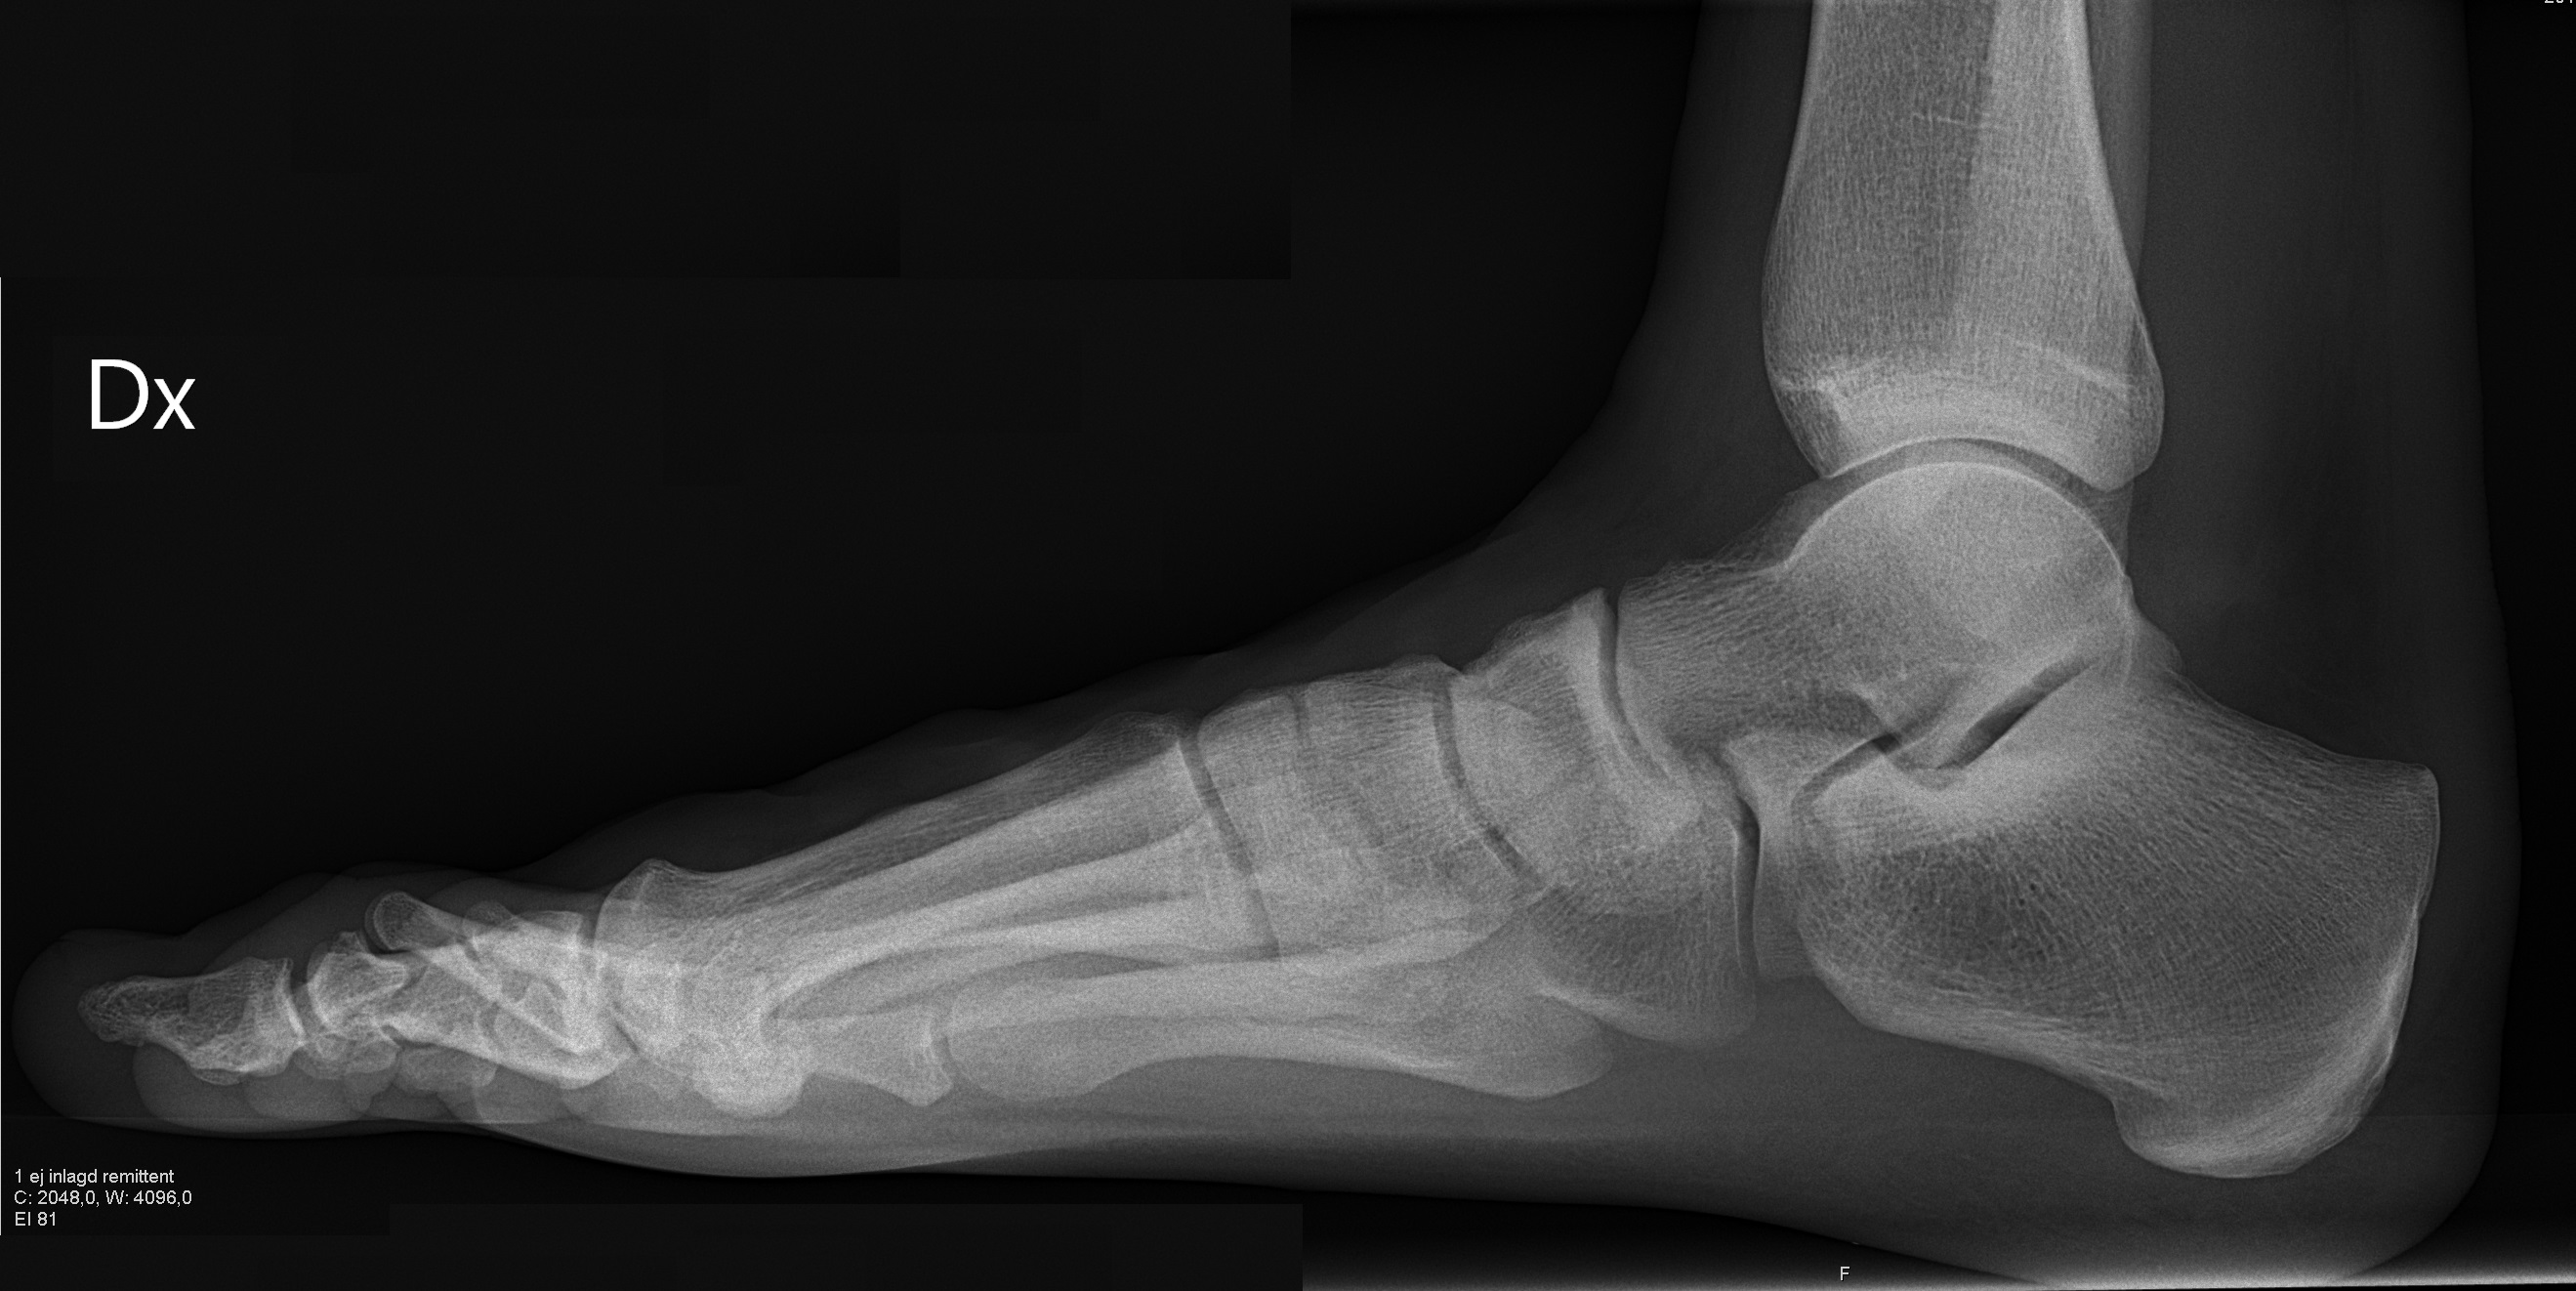 File:X-ray of normal right foot by lateral projection.jpg ...